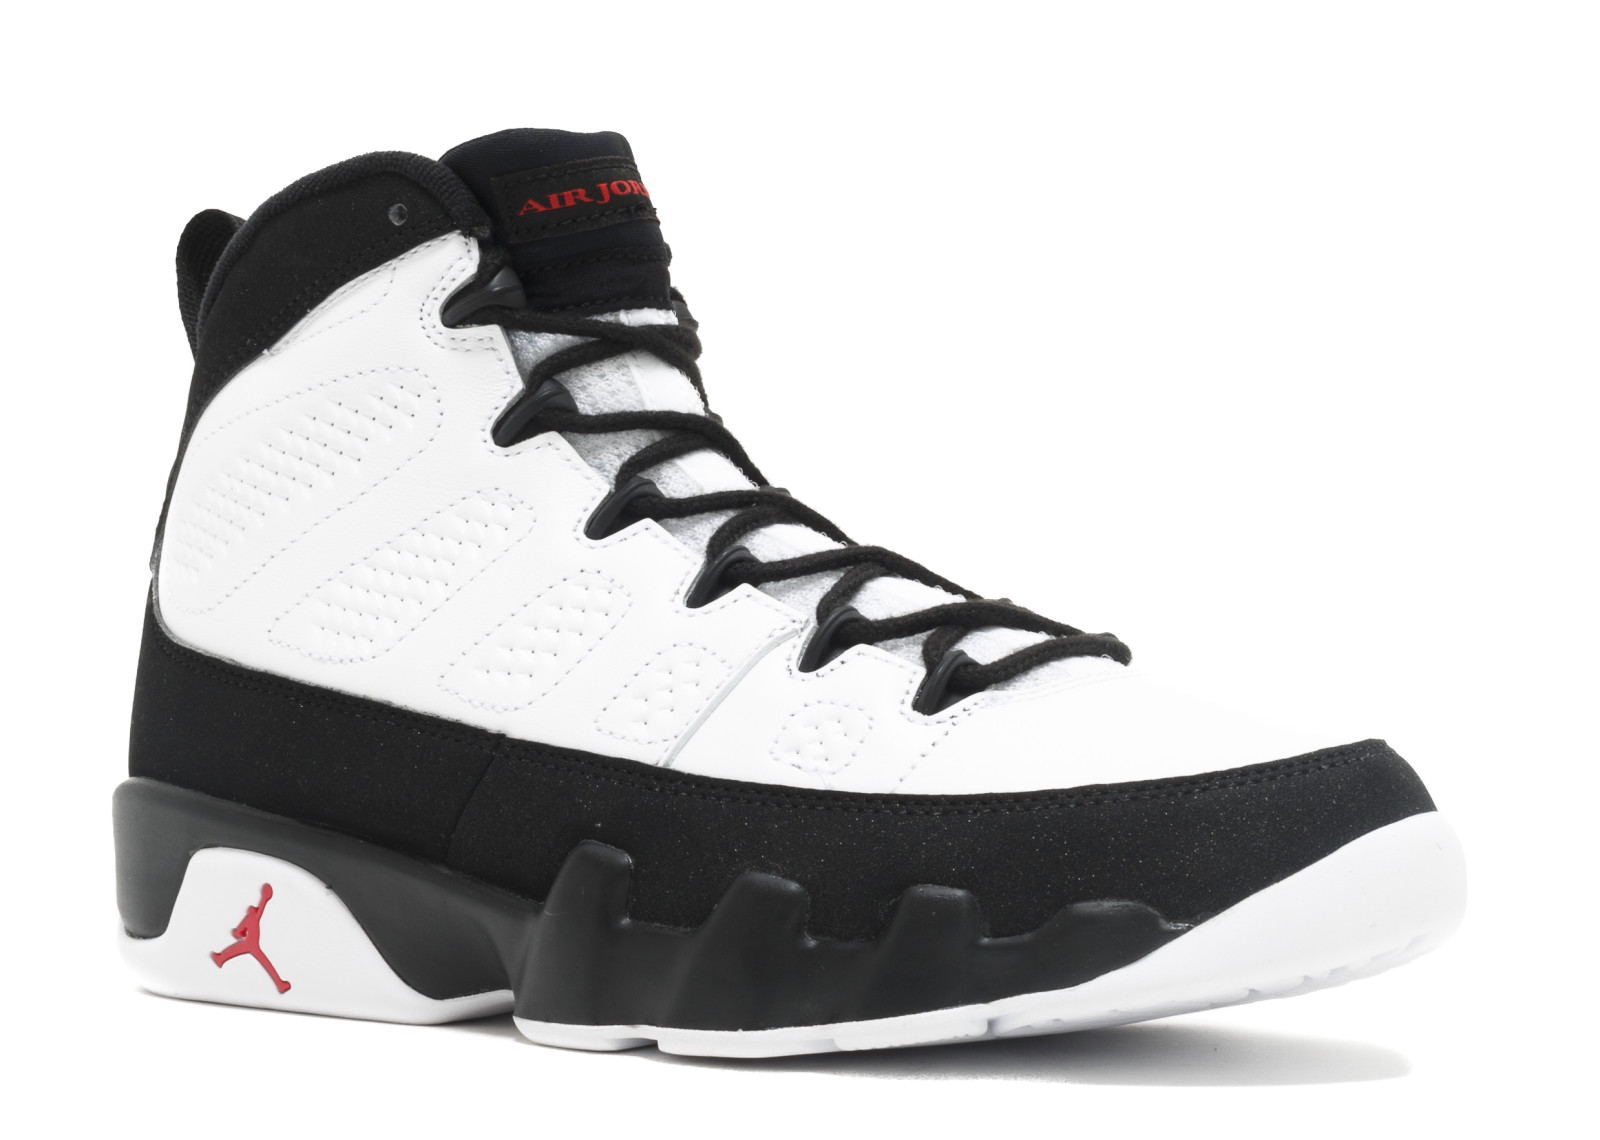 best website 700e8 f5be5 promo code air jordan 9 retro space jam 97b24 5207b